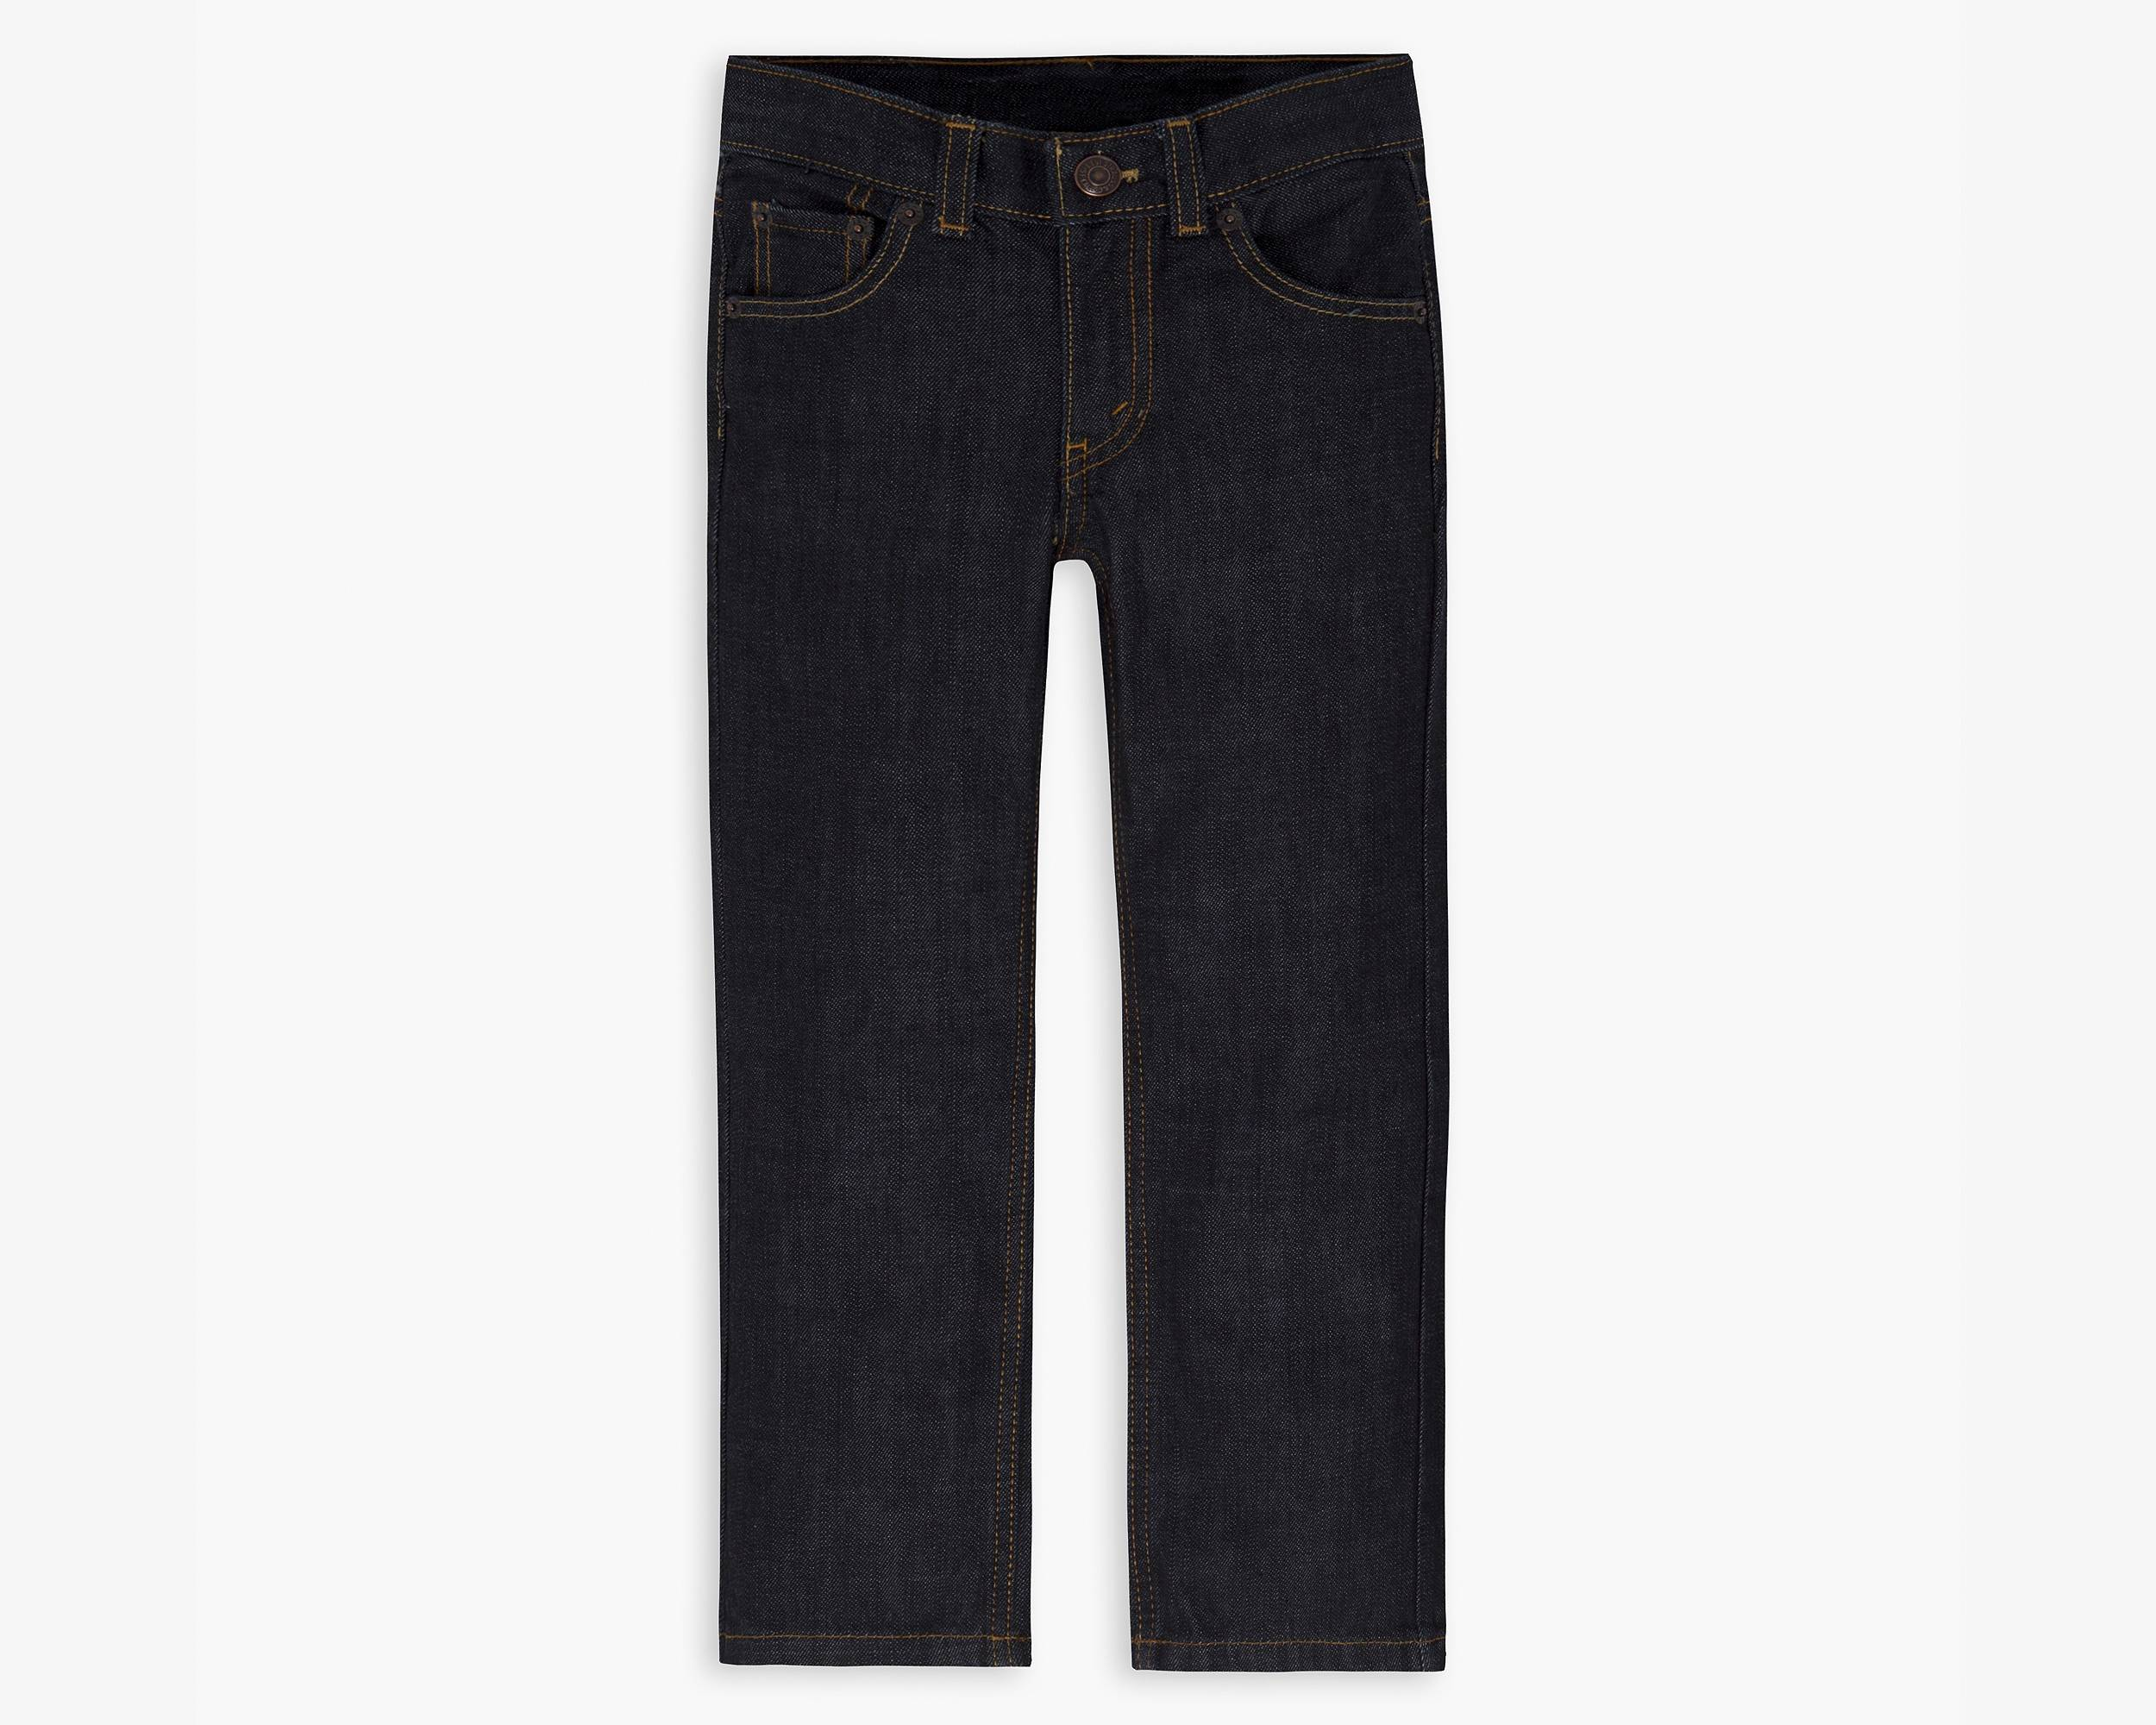 Boys Loose Fit Jeans - This classic pair of roomy, boot-cut $20 jeans from Old Navy features a hidden elastic waistband with adjustable button holes for cinching. These jeans are durable and easy to care for, and they come in husky sizes 10 through